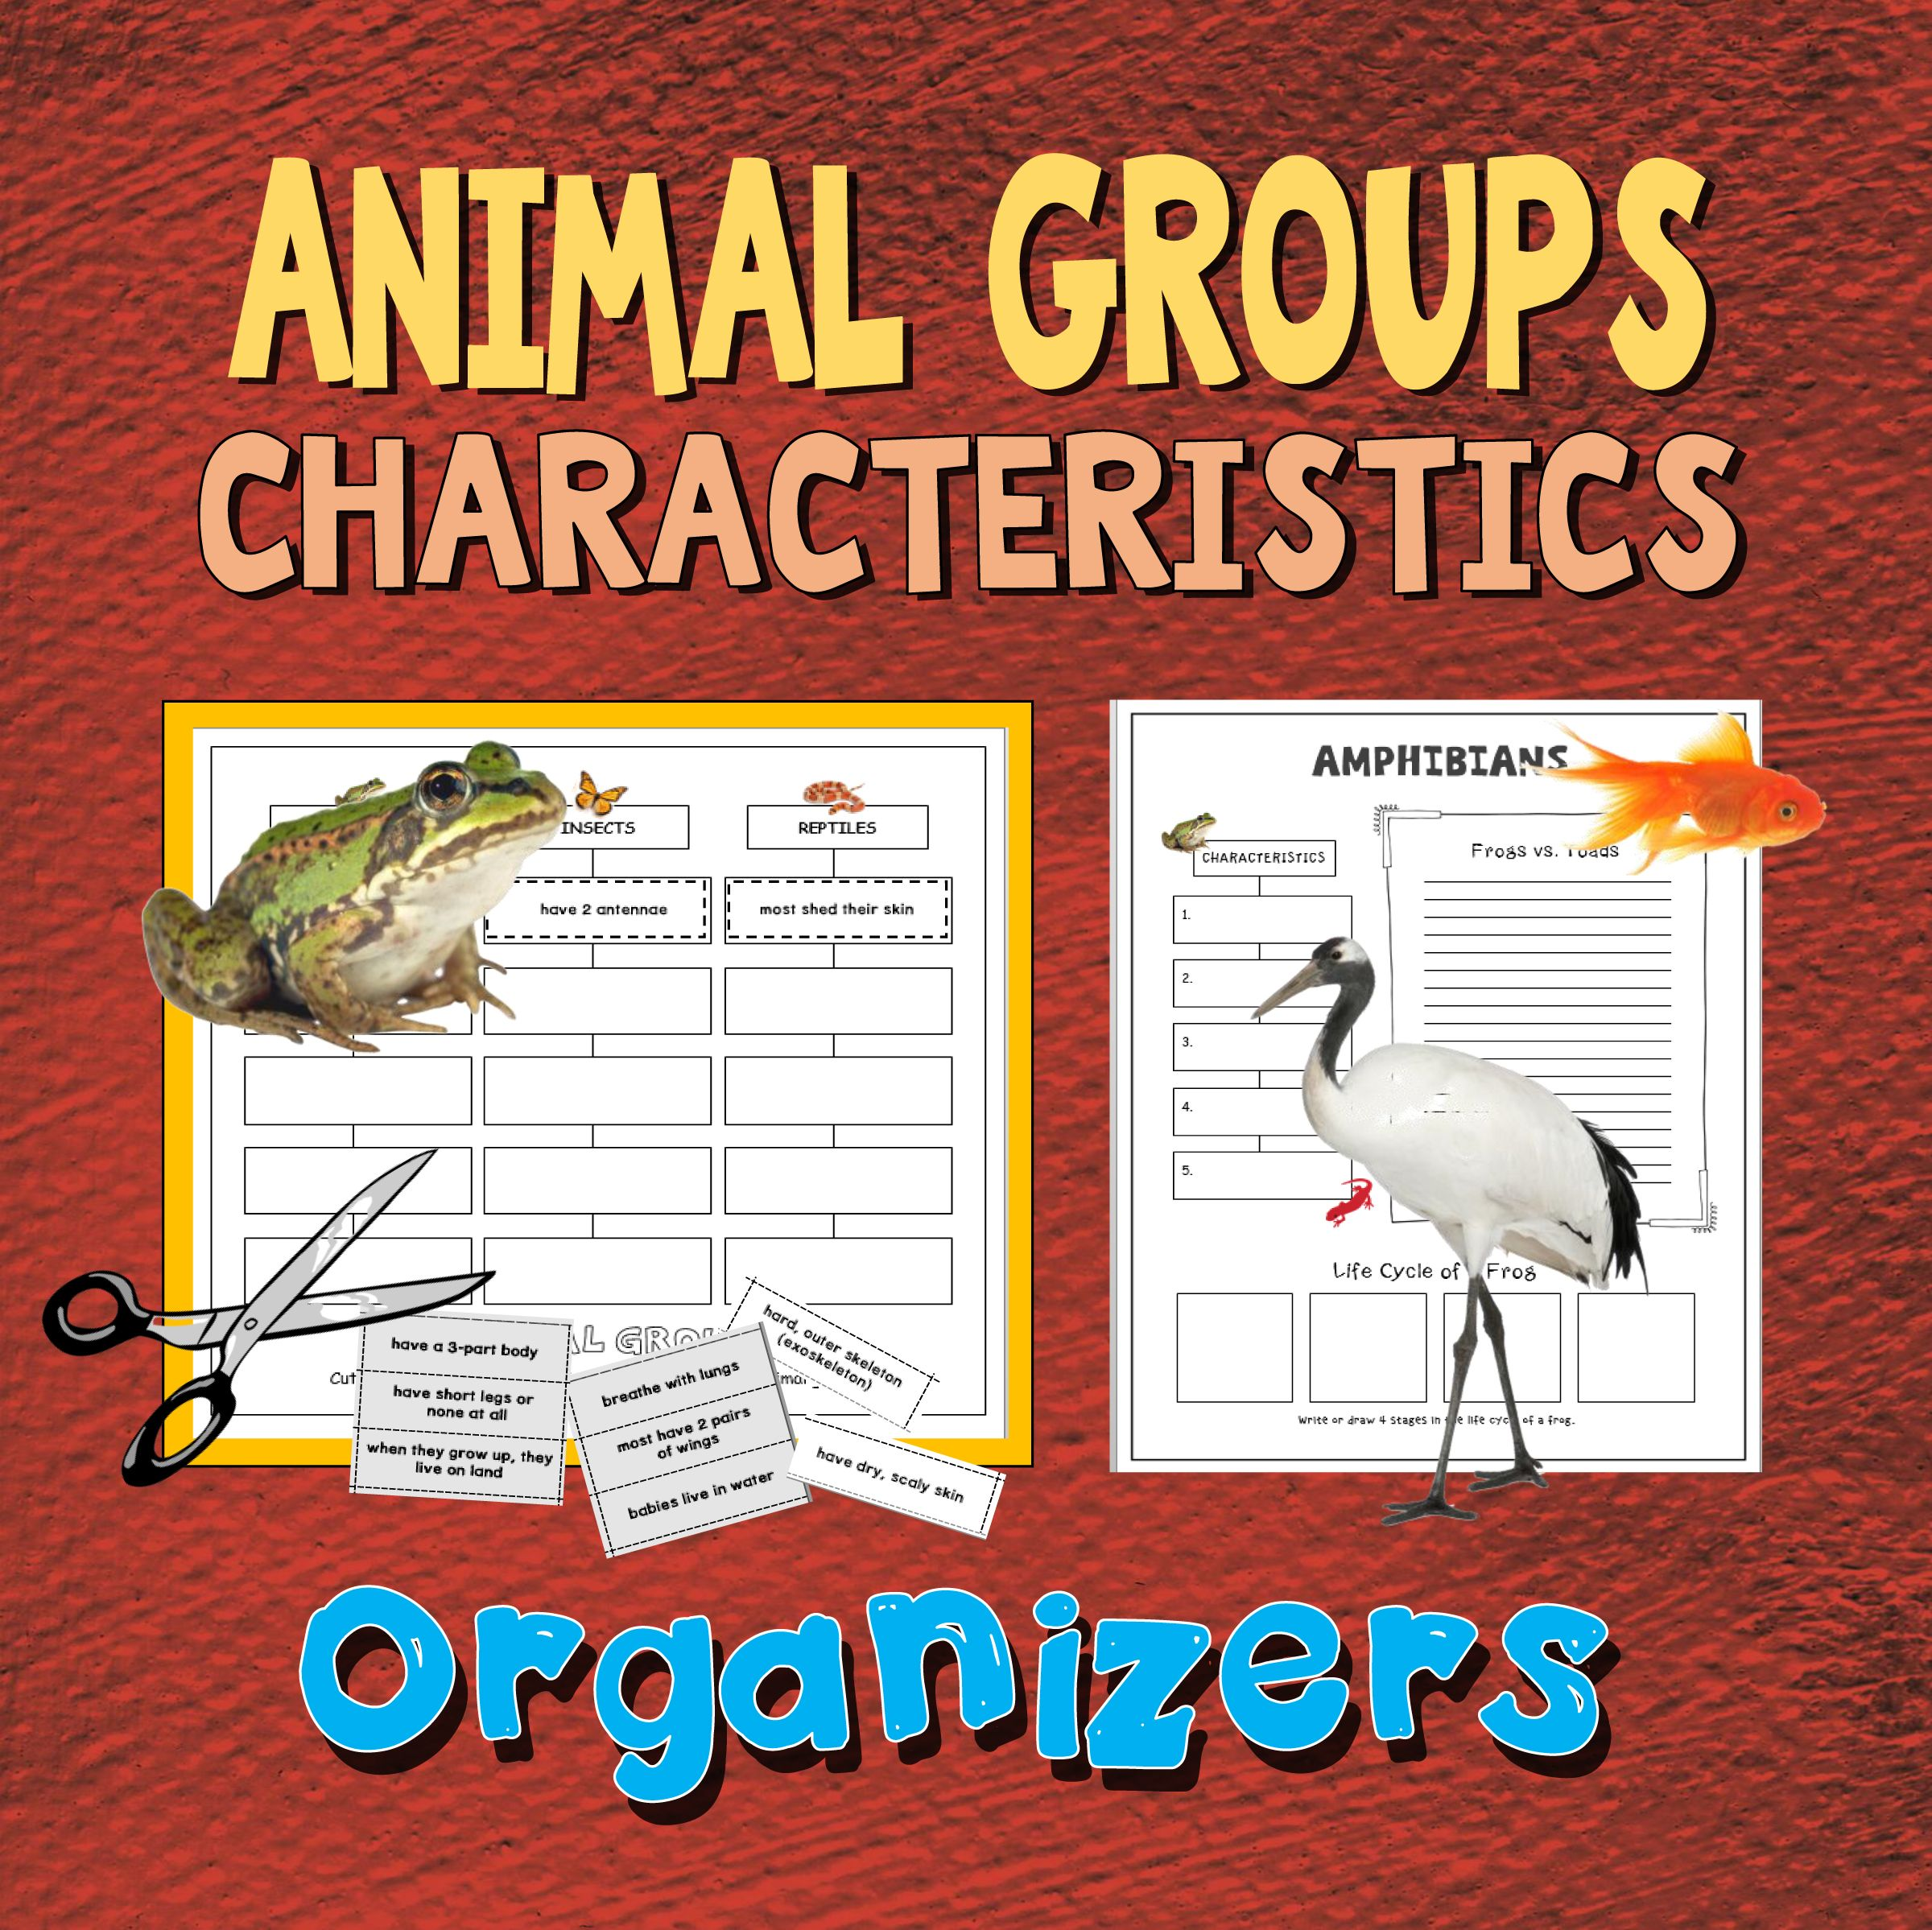 Animal Groups Characteristics